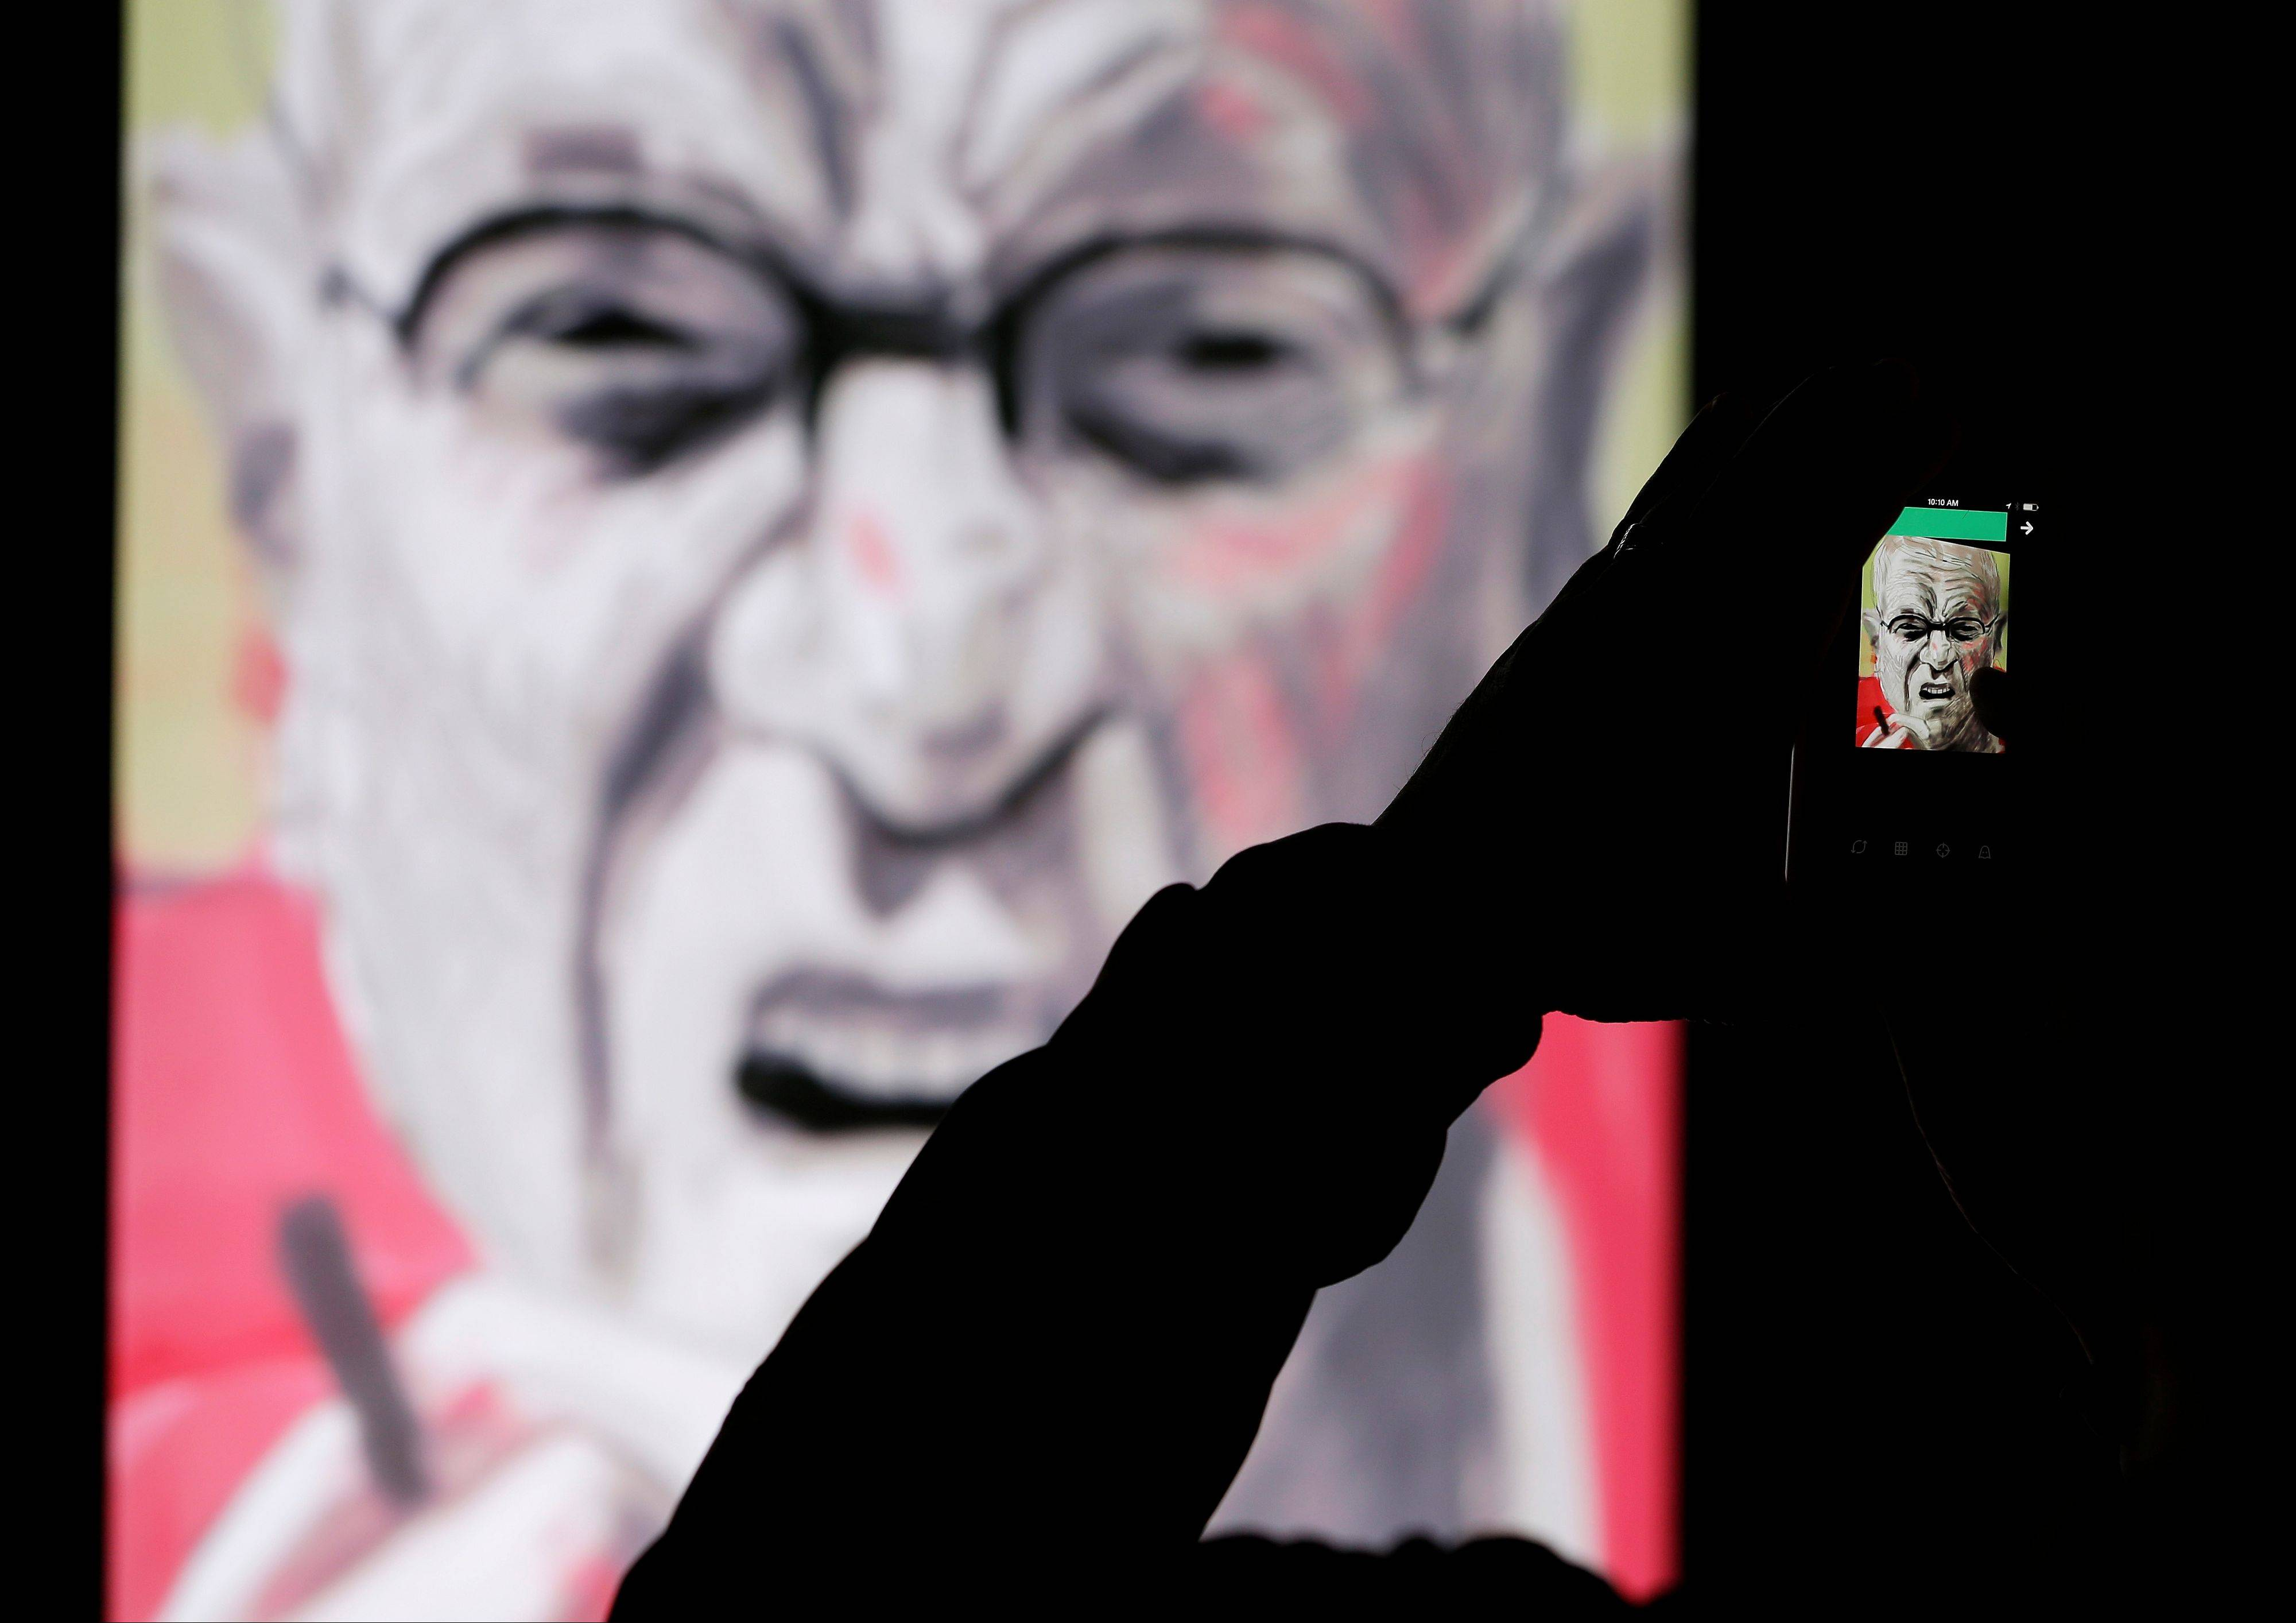 A man records how a painting made by David Hockney using an iPad takes shape at an exhibit at the de Young Museum in San Francisco.